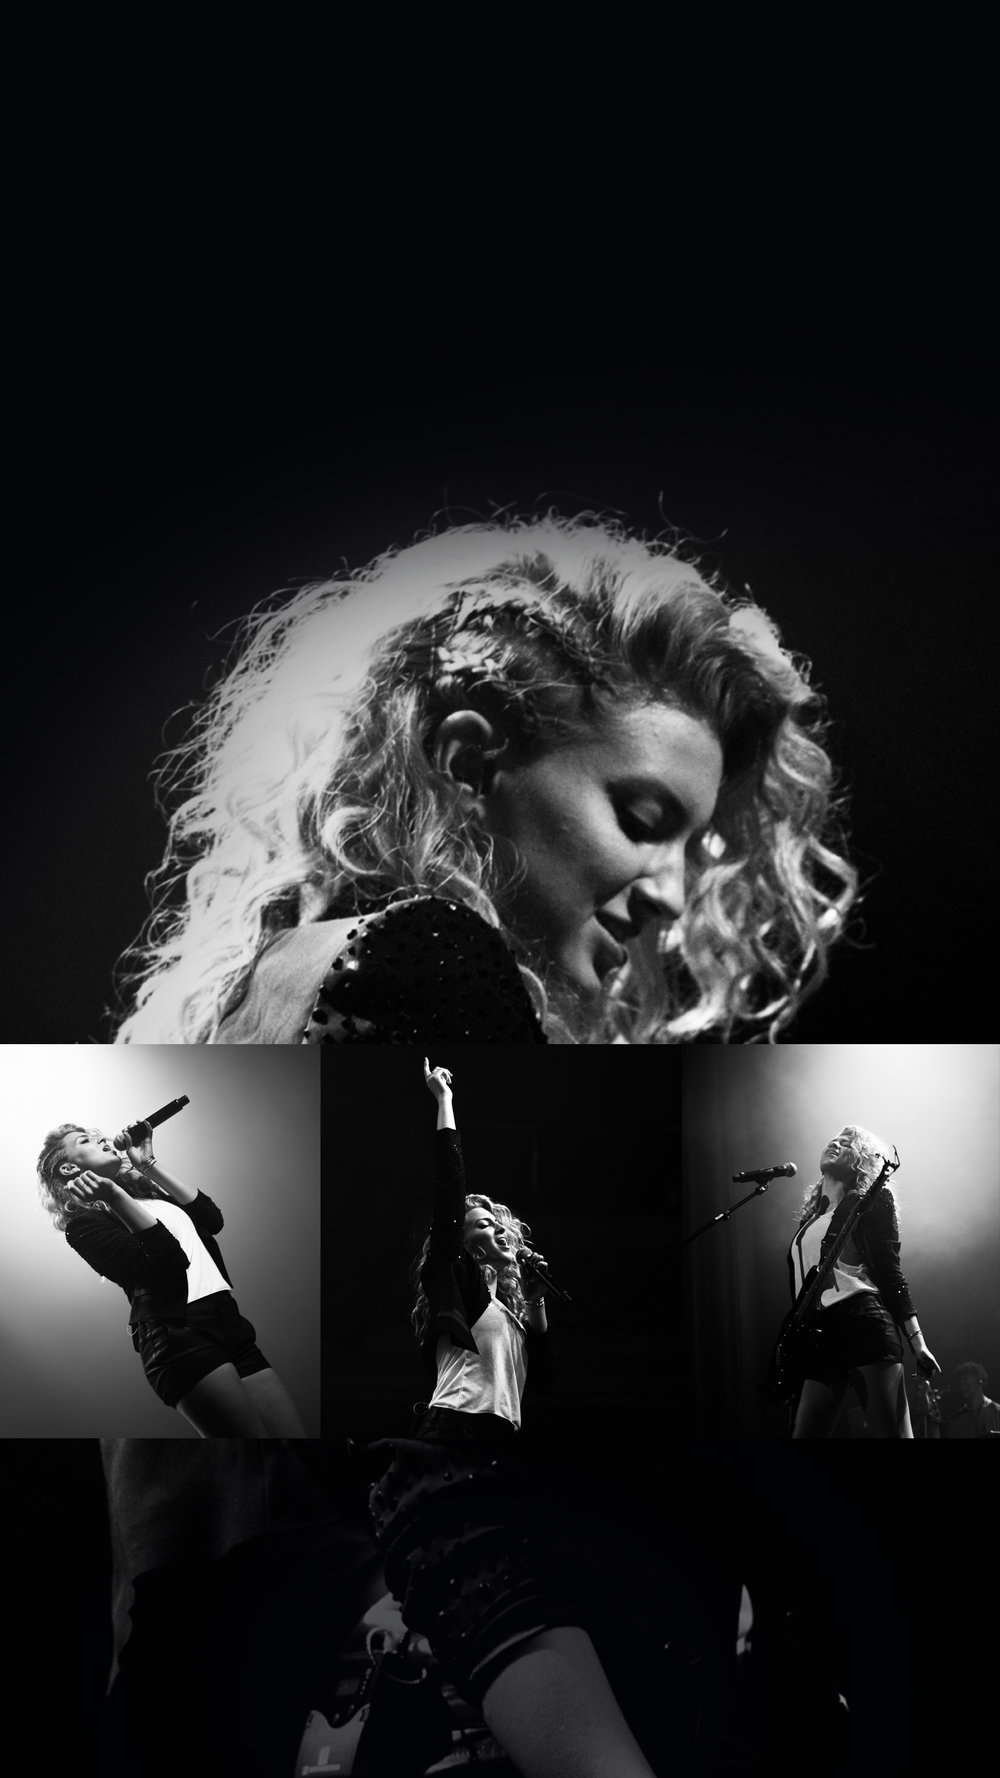 torikelly-lockscreen10.jpg